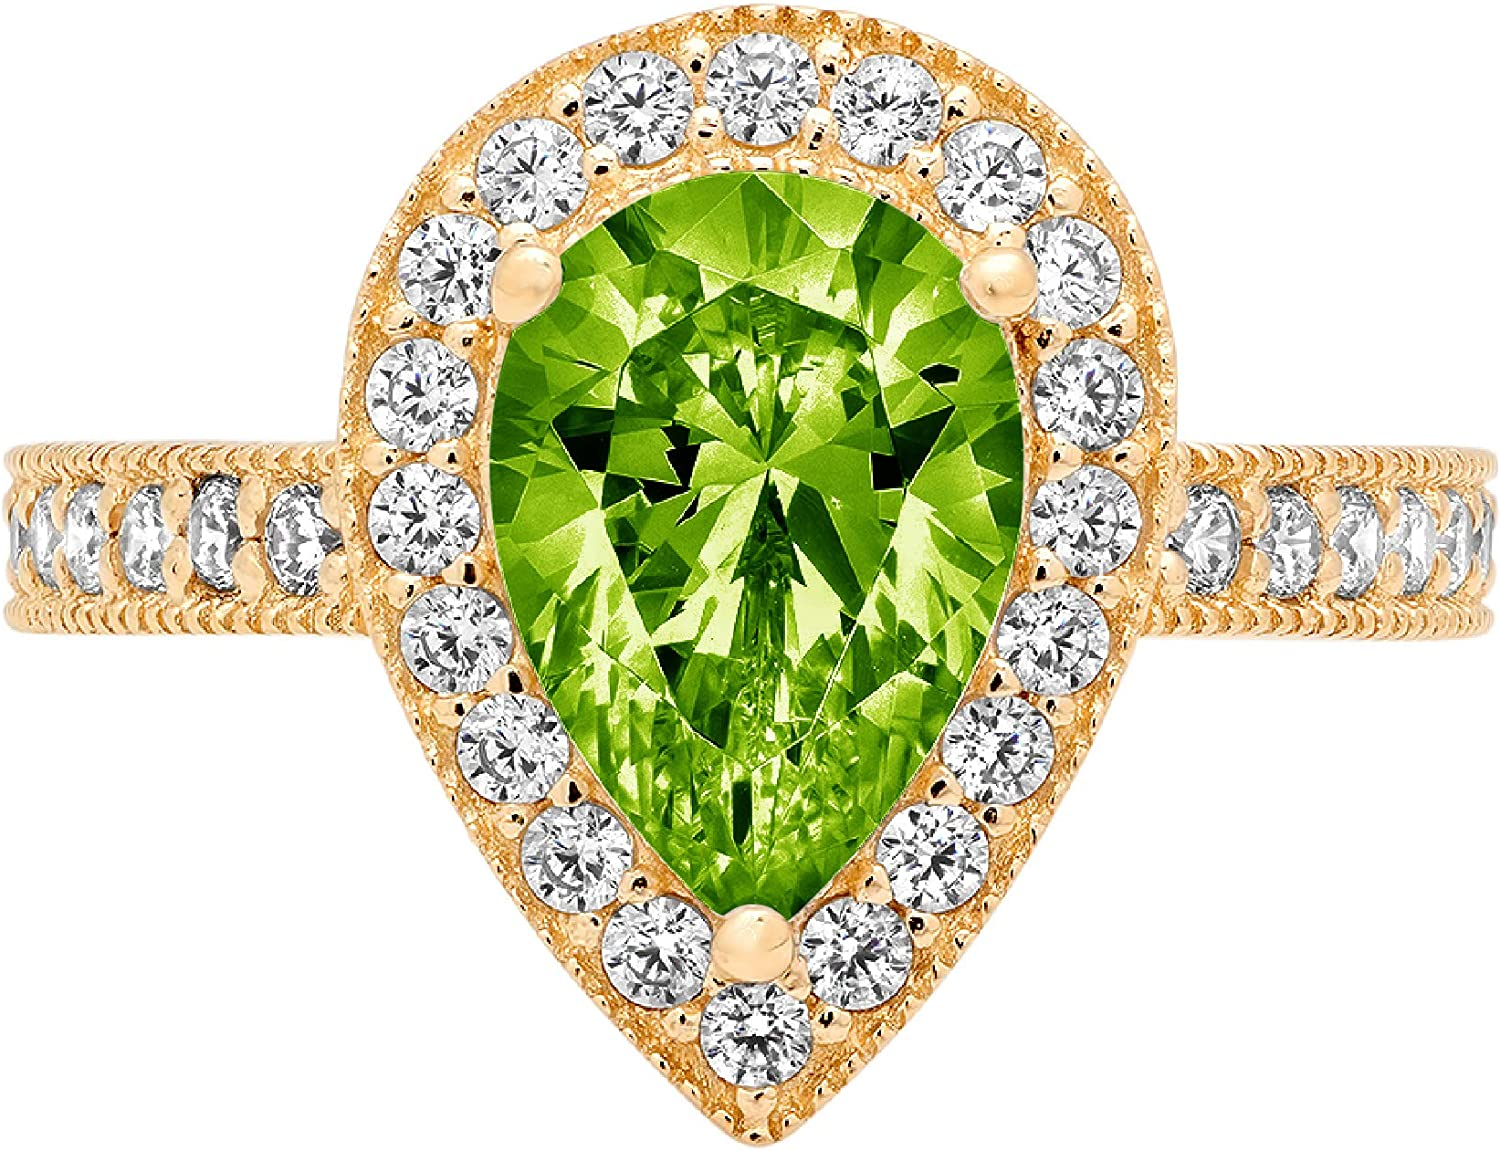 1.98ct Brilliant Pear Cut Solitaire with Accent Halo Flawless Genuine Natural Pure Green Peridot Gemstone VVS1 Designer Modern Statement Ring Solid 14k Yellow Gold